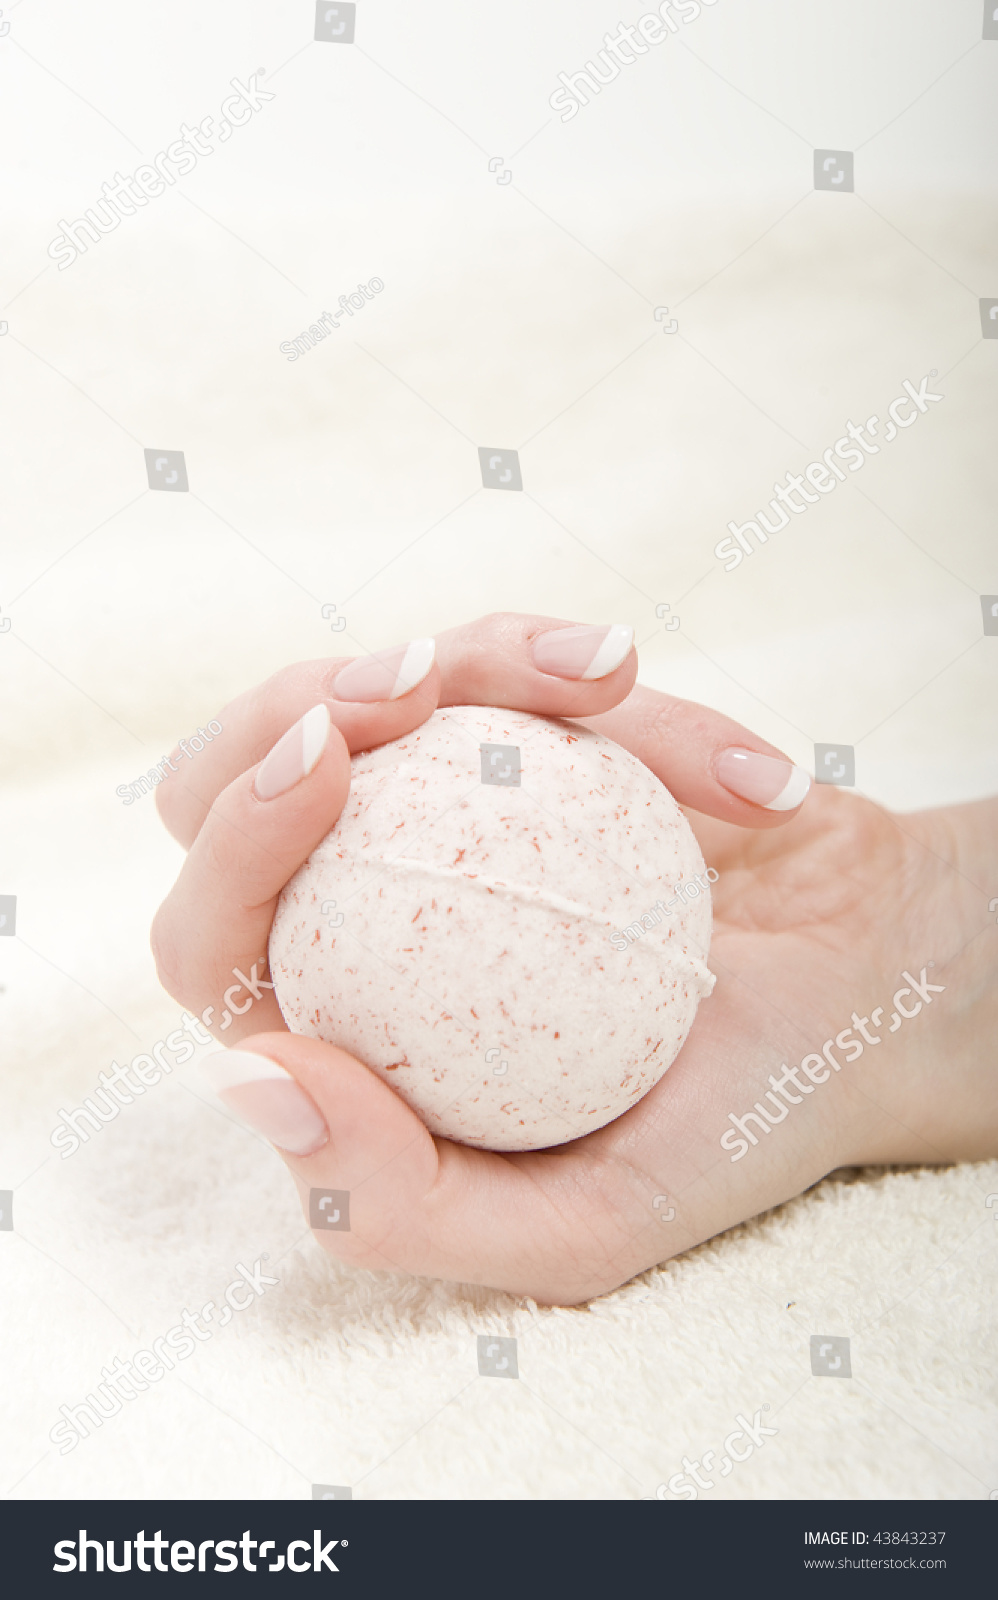 Beautiful Hand Perfect French Manicure Strong Stock Photo 43843237 ...